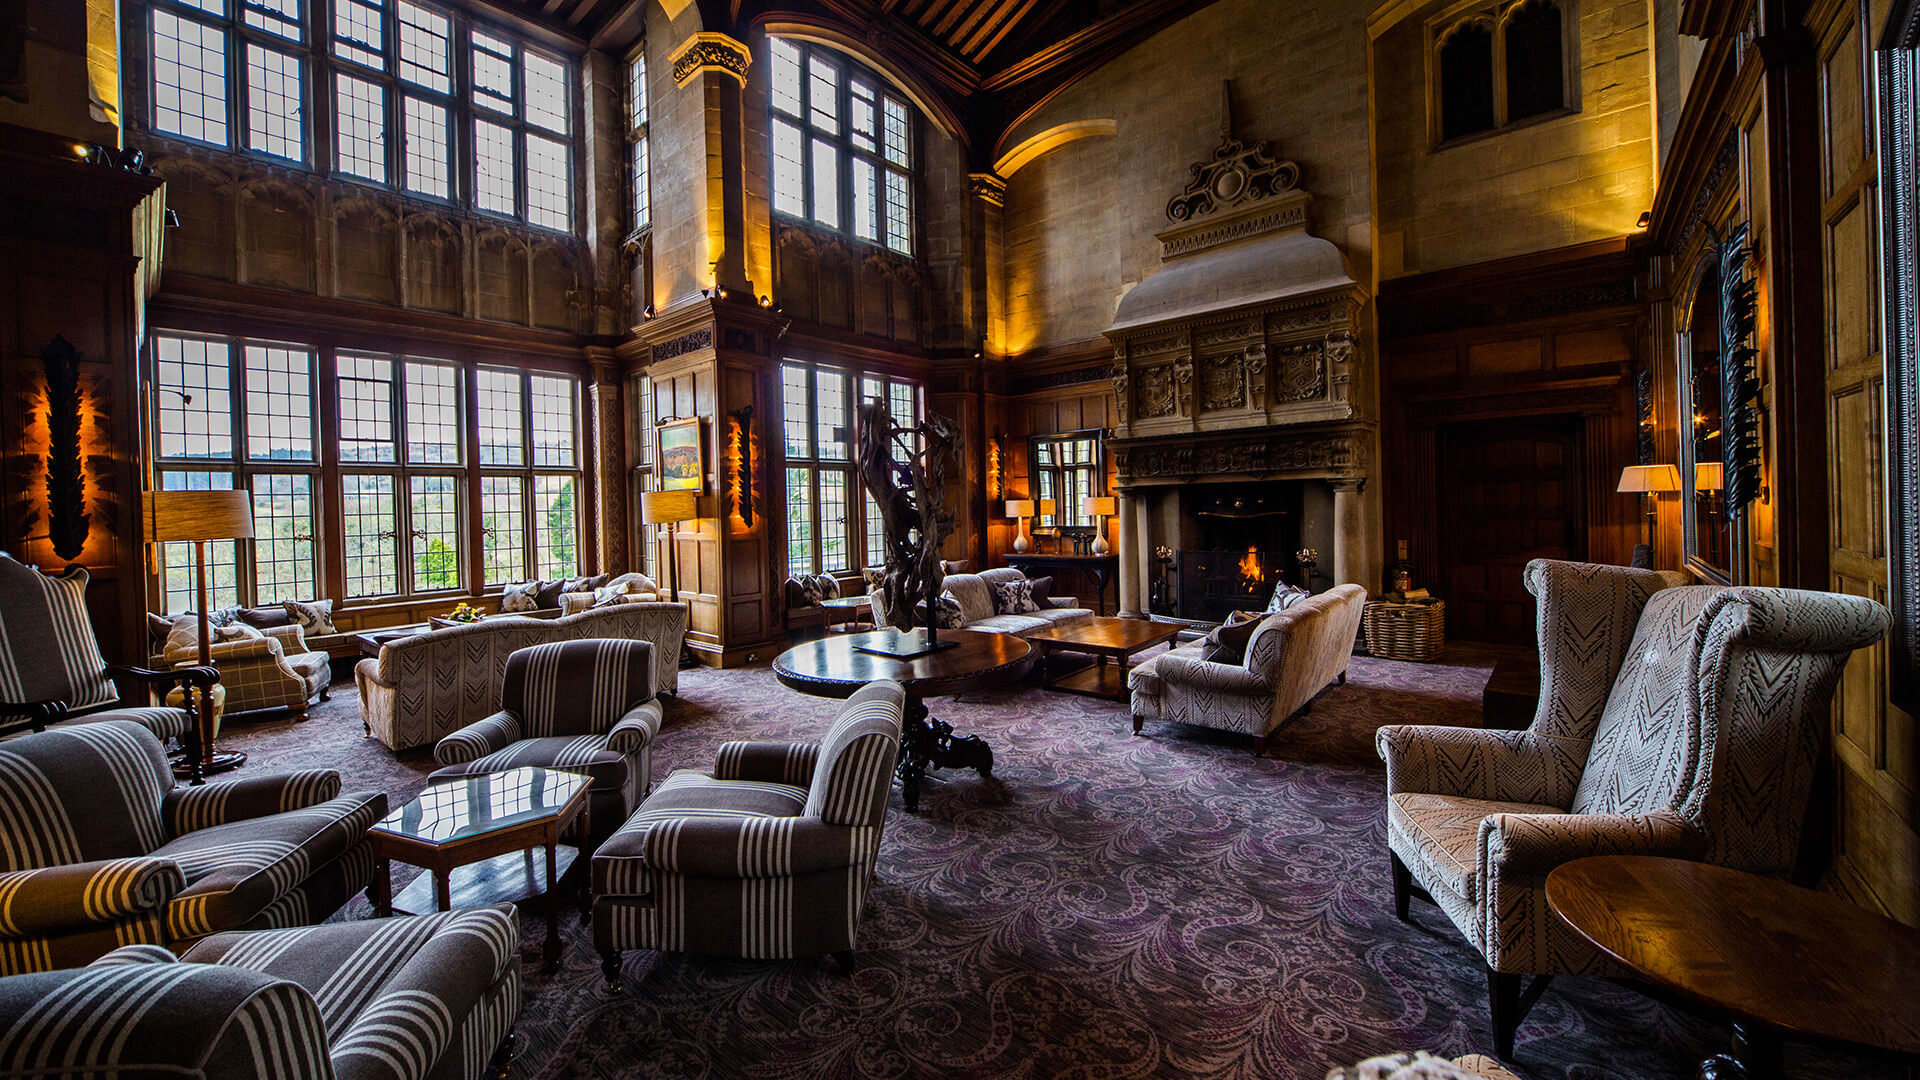 Bovey castle hotel luxury hotels devon pride of britain for Hotel luxury